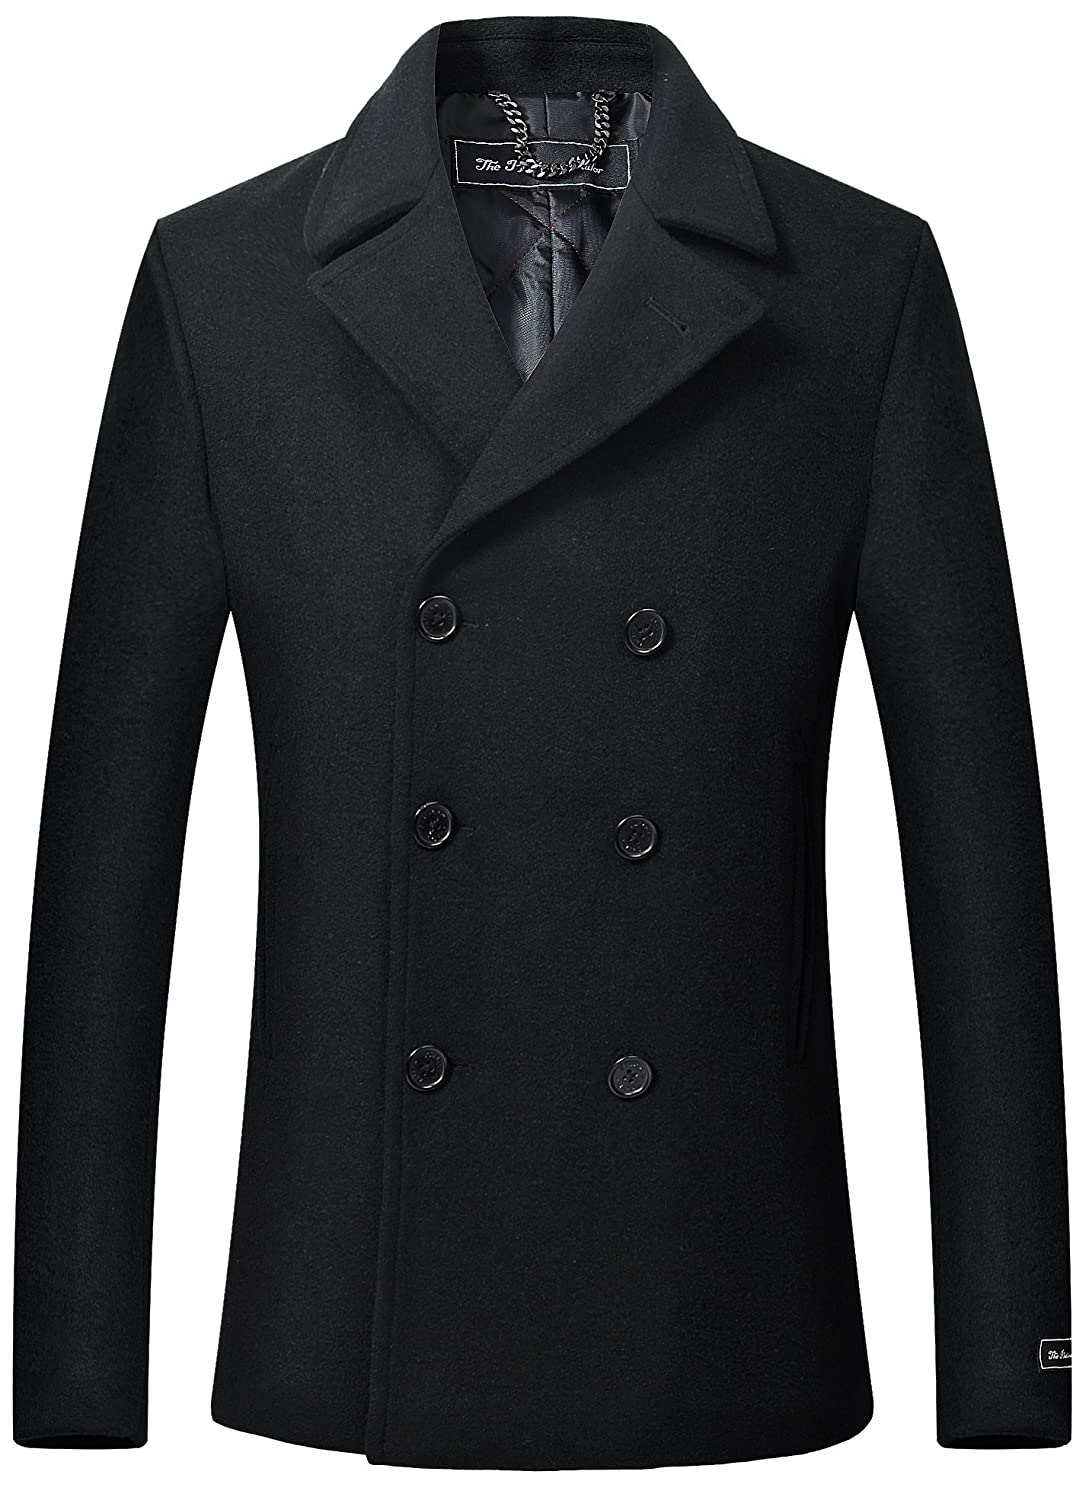 The Platinum Tailor Mens Black Wool & Cashmere Pea Coat Double Breasted Heavy Warm Winter Overcoat Cromby